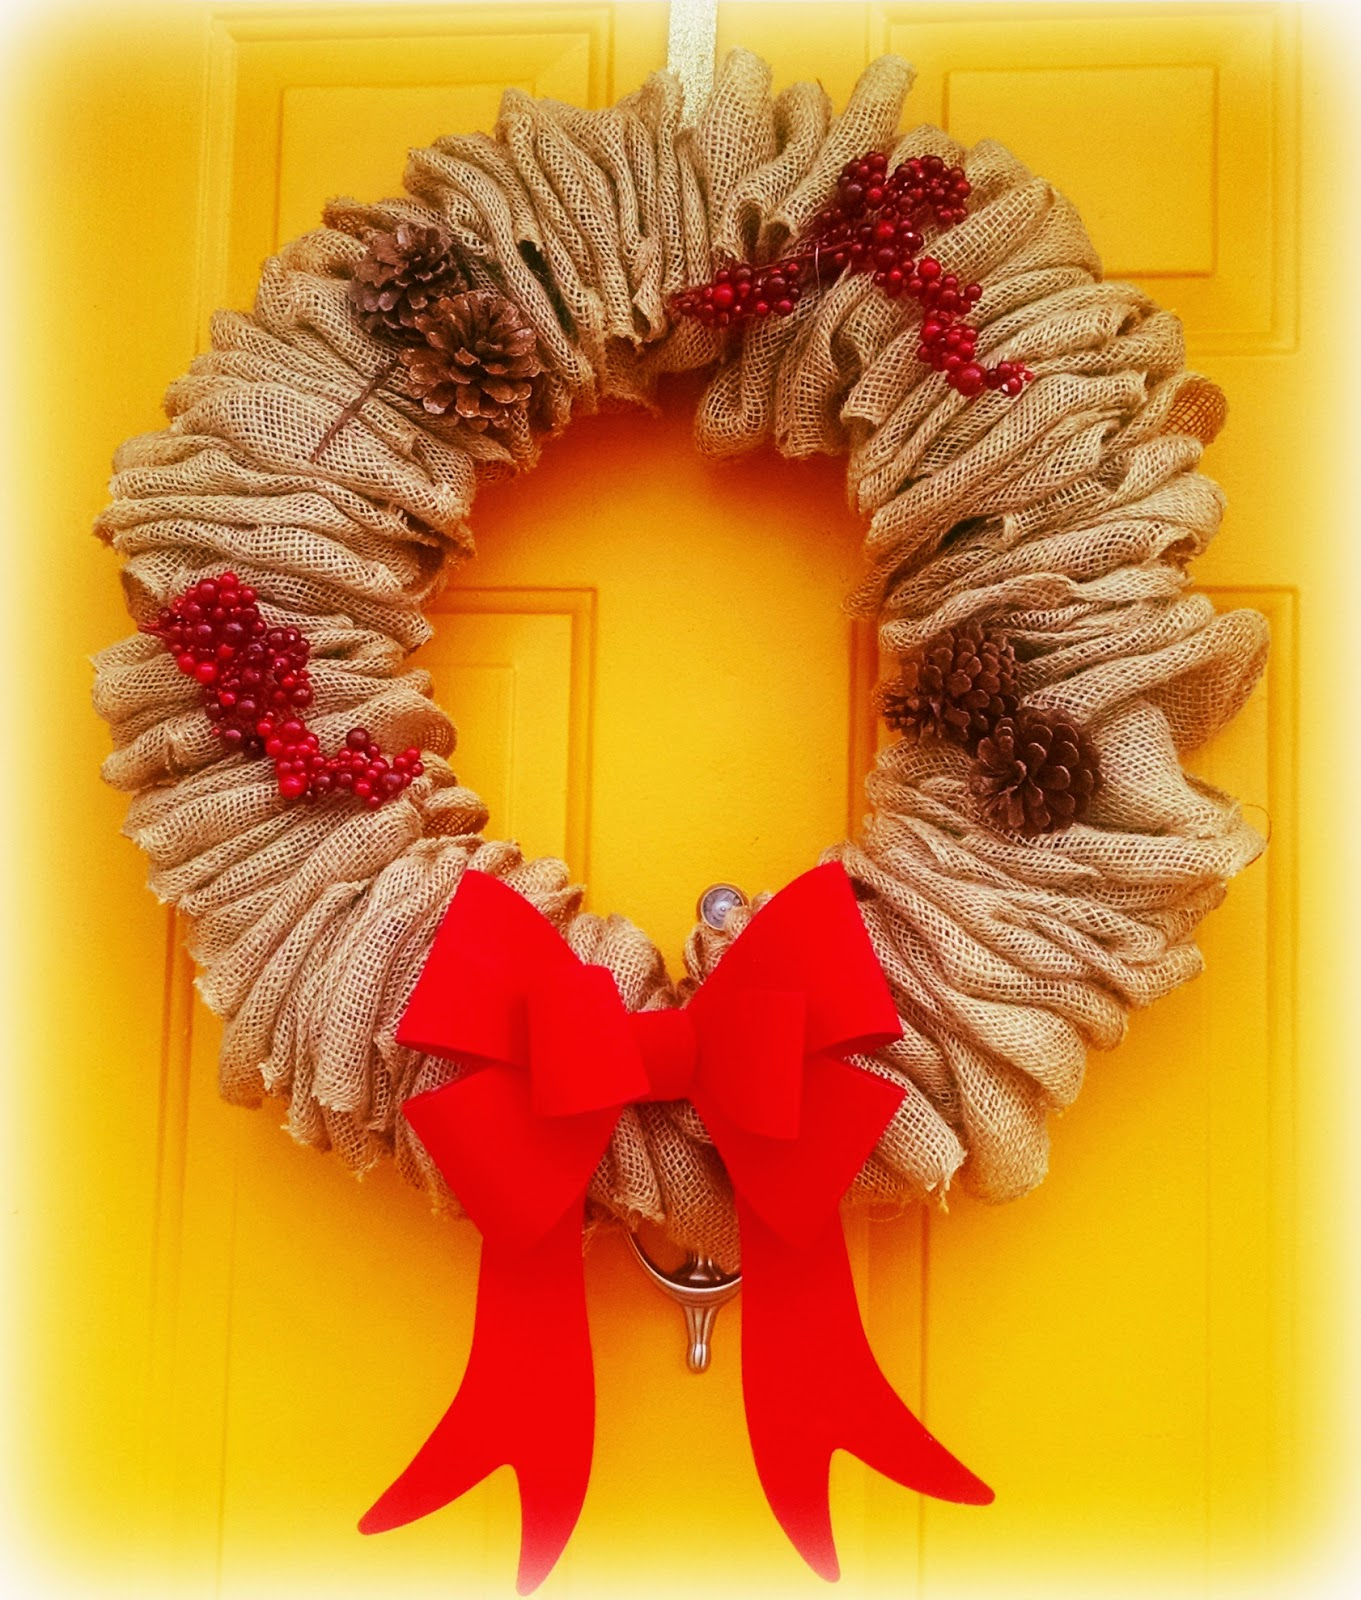 8a139e02d ... popular DIY crafts that explode all over Pinterest and Instagram. This  past fall I saw numerous posts and pins for handmade burlap wreaths.